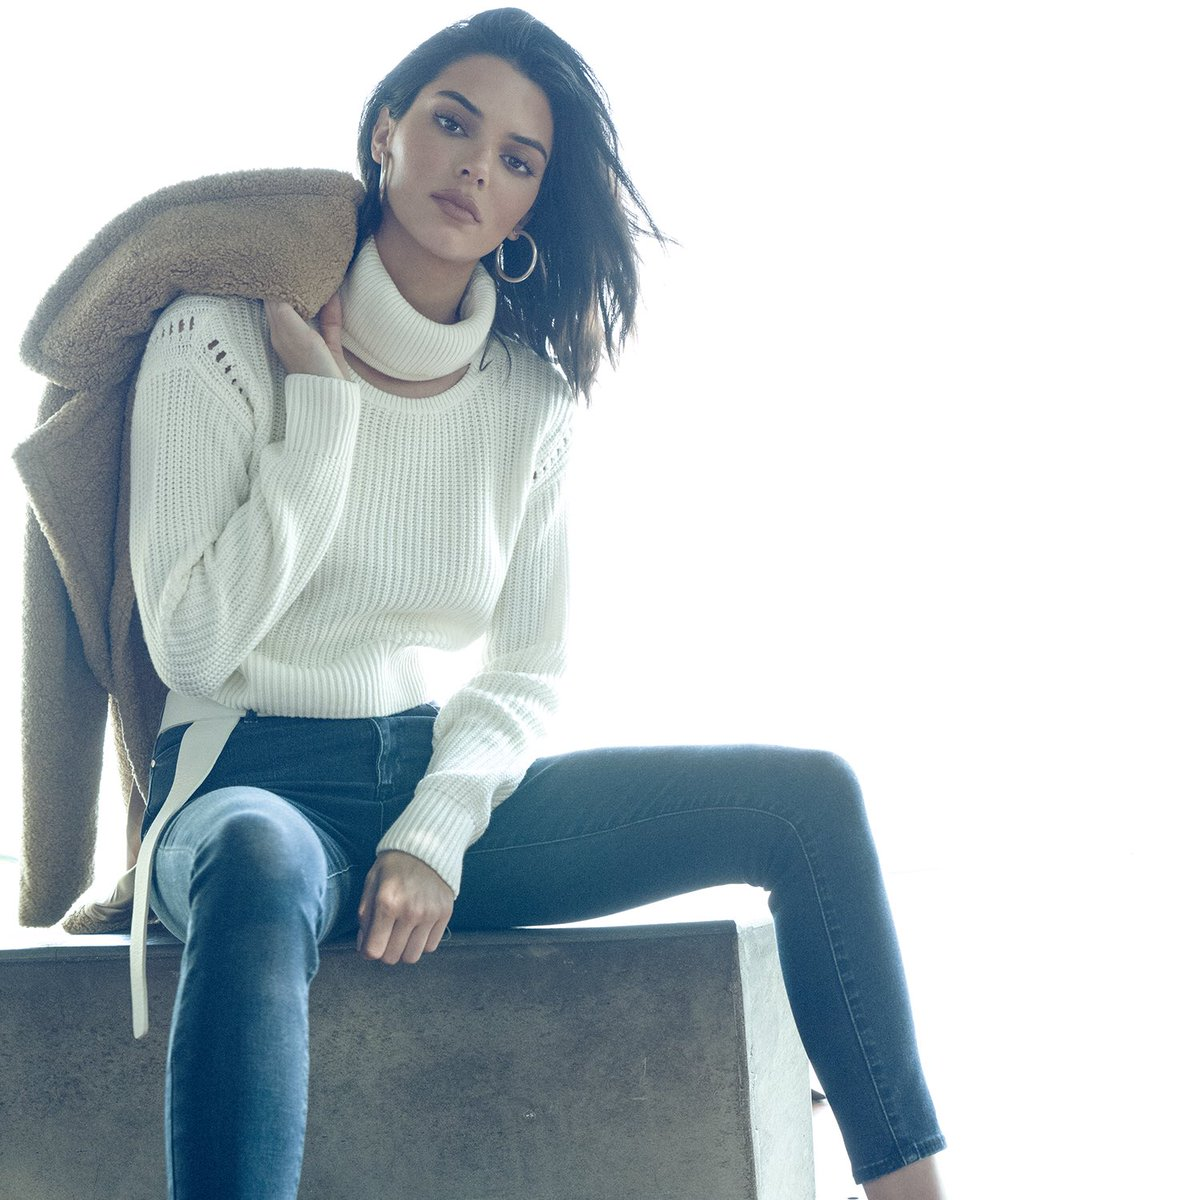 Shop our #KKFALL18 collection on @amazon @amazonlifestyle @kendallandkylie https://t.co/sNfIMs6ZUj https://t.co/dVsHrqsZgZ